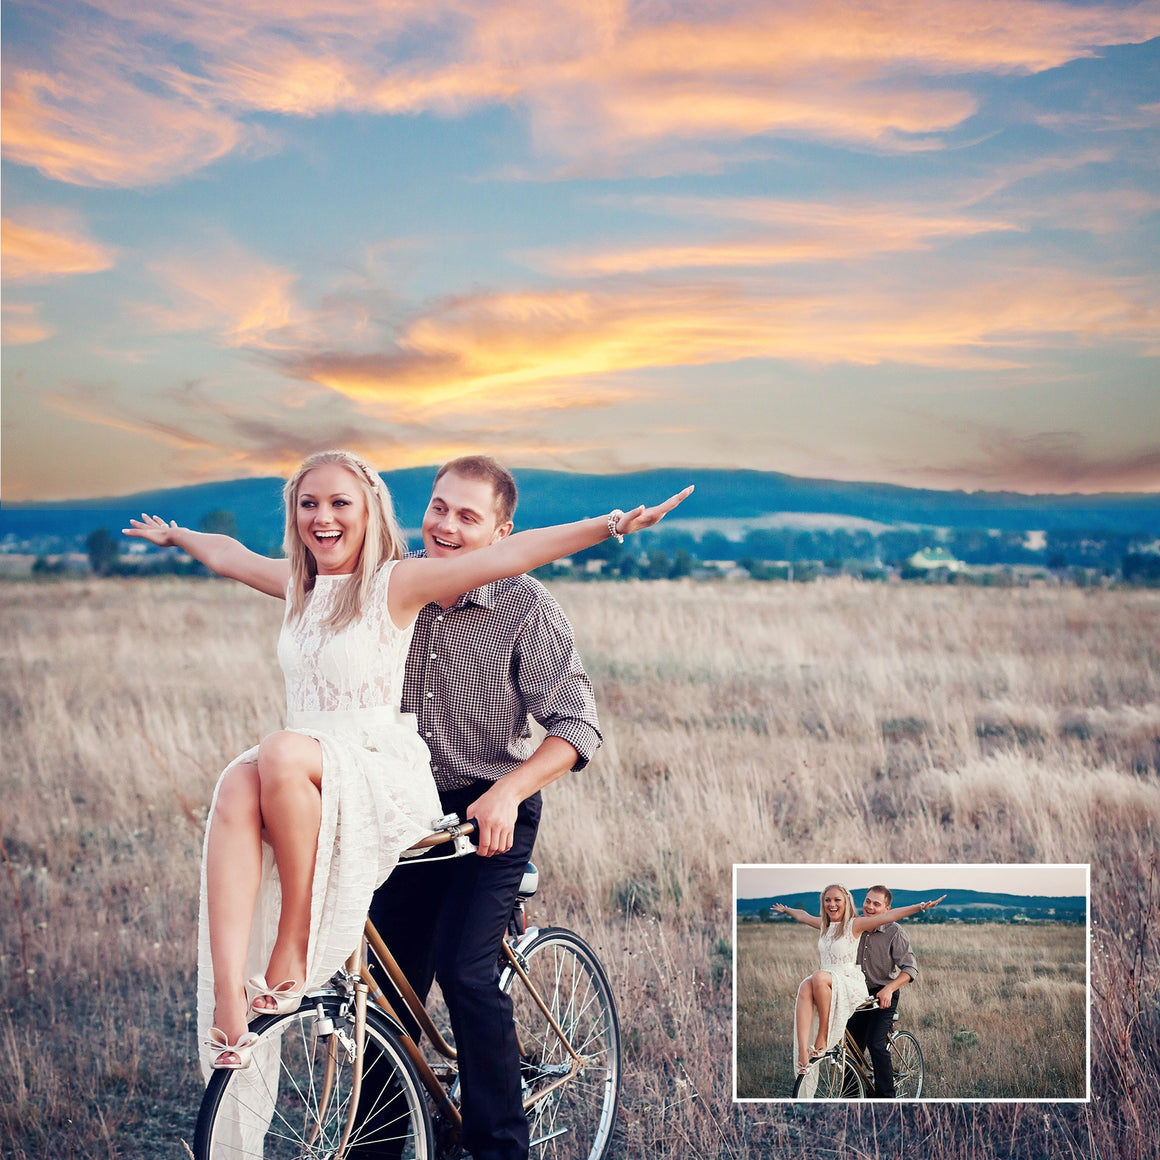 Epic Skies Sunset Overlays ADD-ON - Uplift Photoshop Actions, Photoshop Overlays and Lightroom Presets